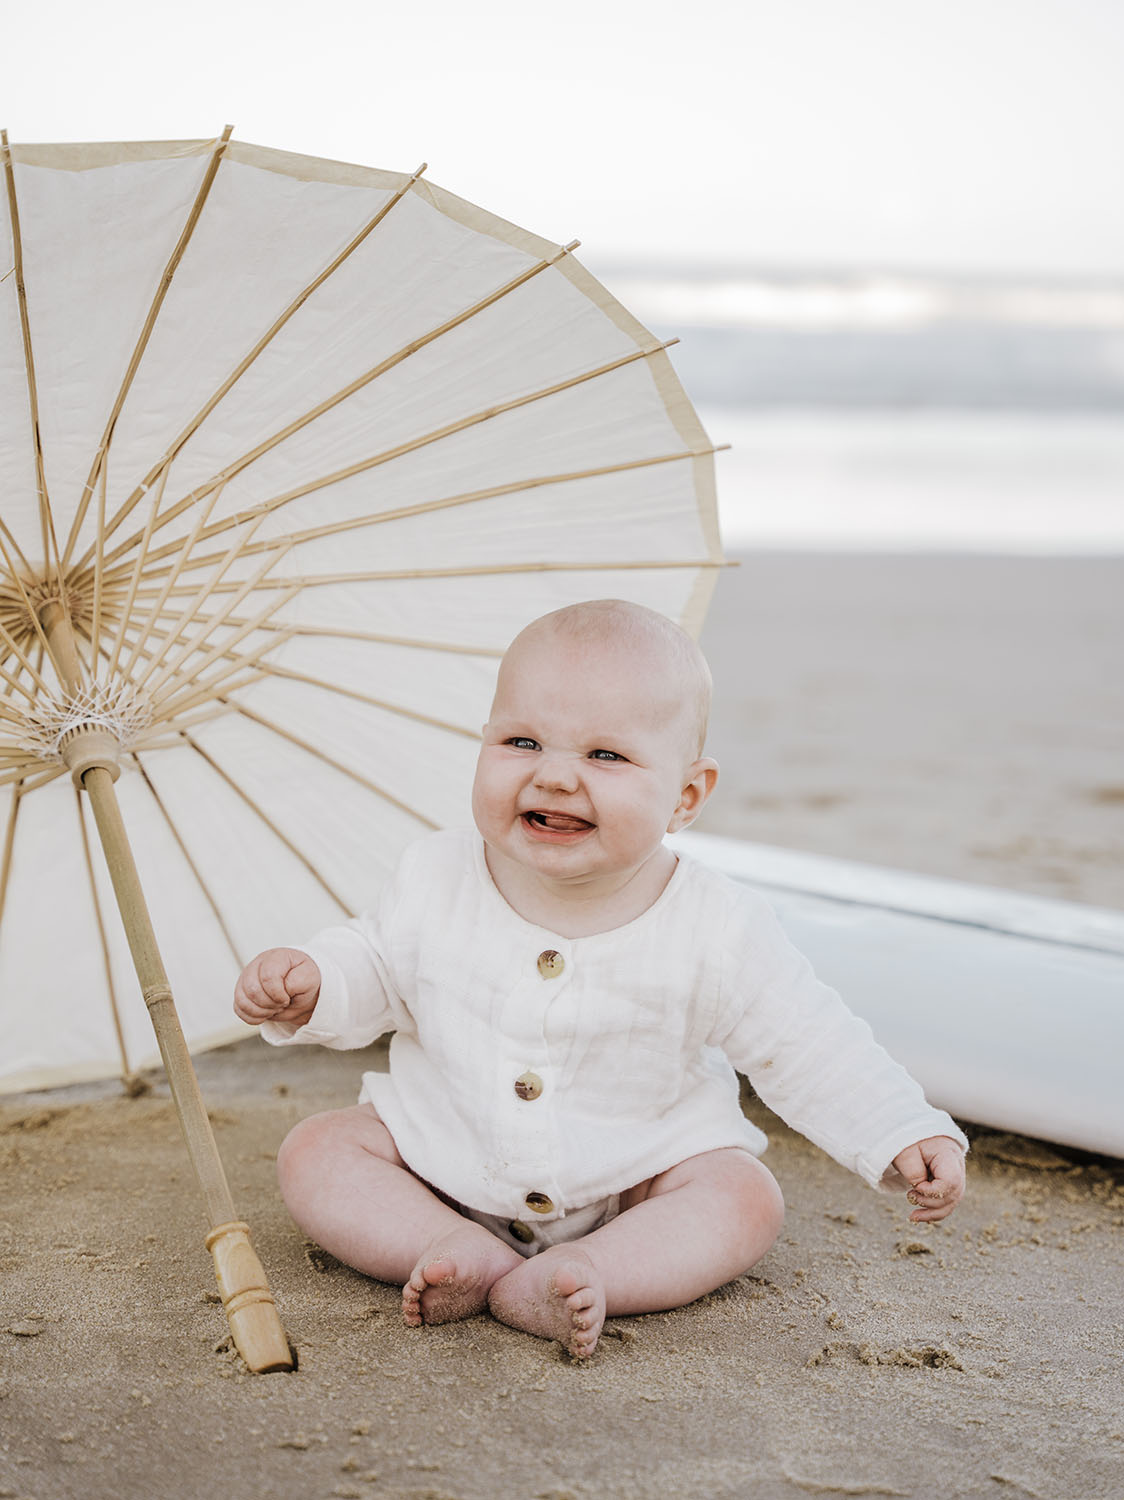 Family Photography - Baby with umbrella